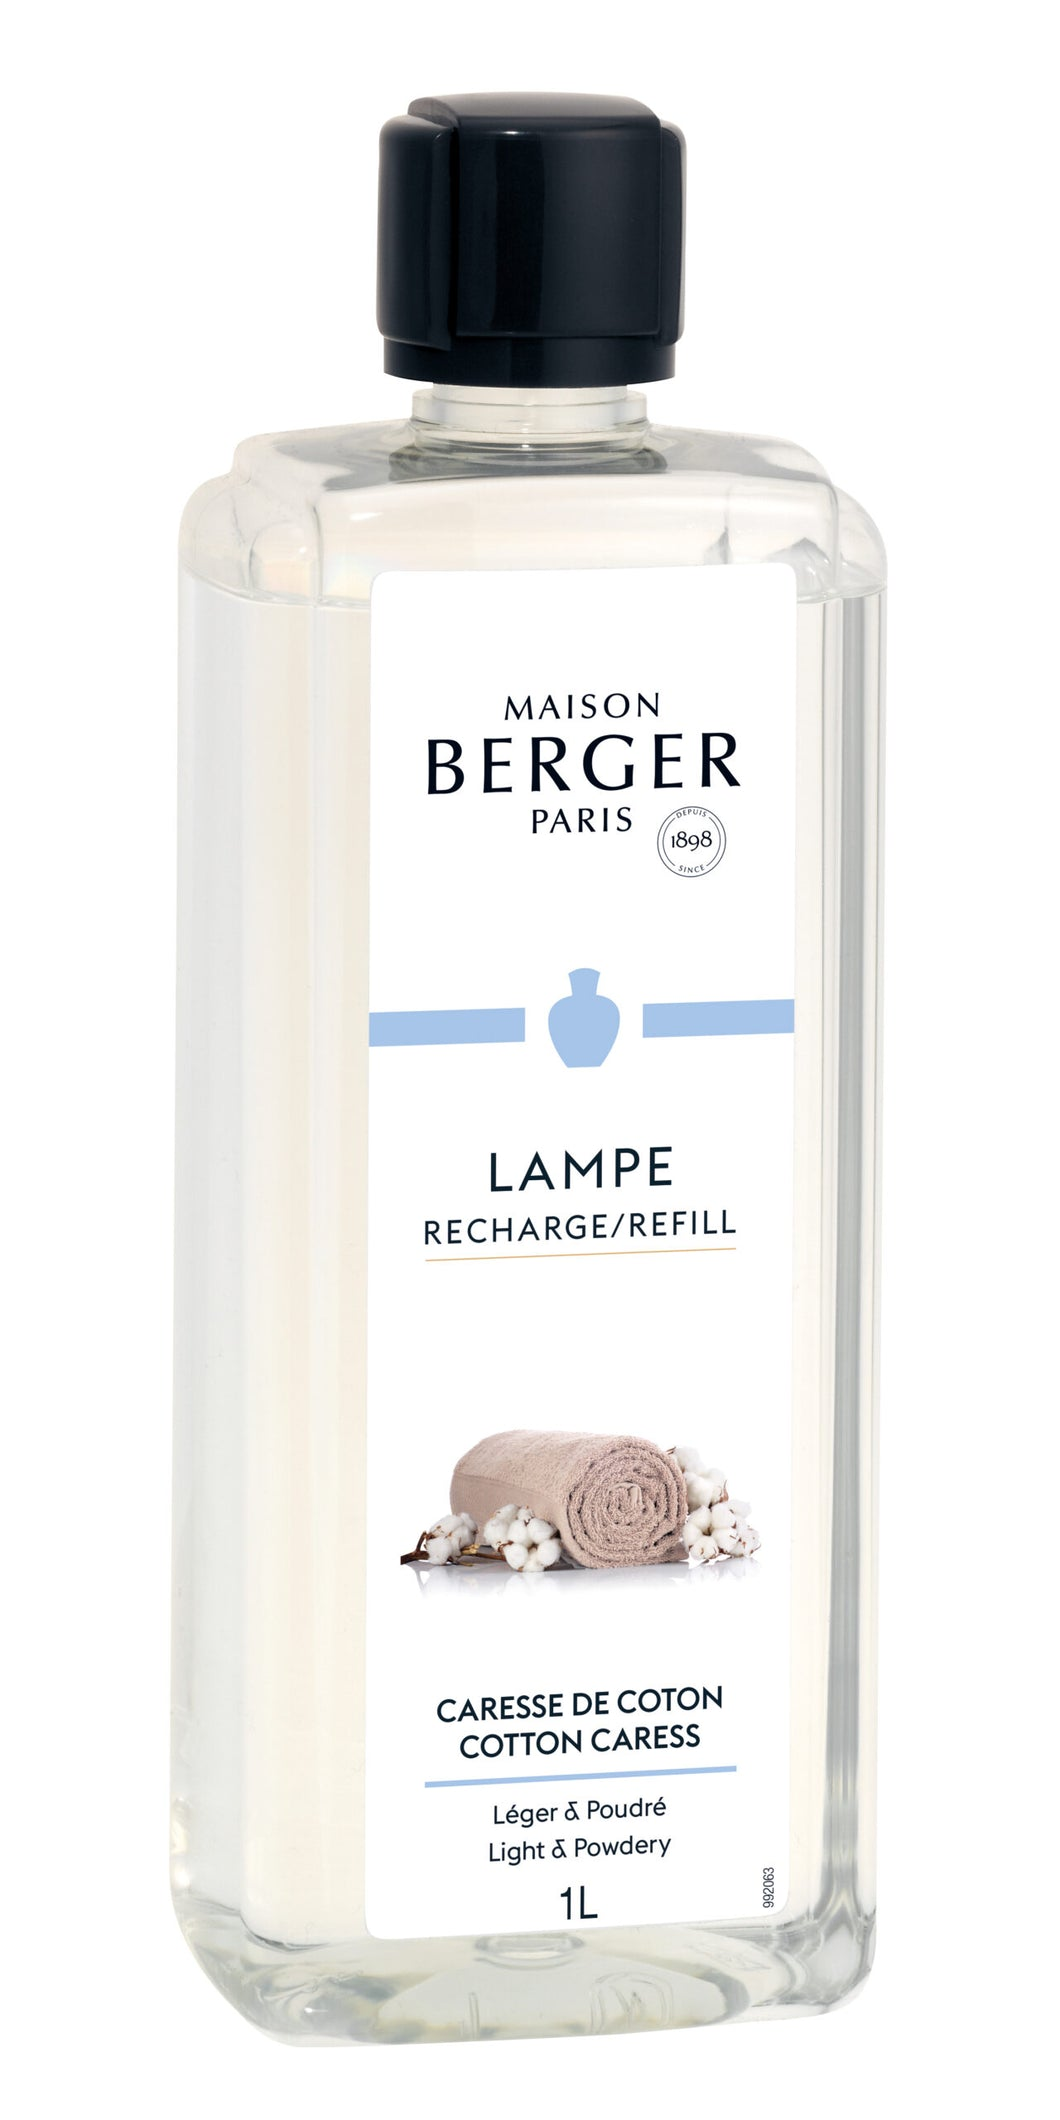 Maison Berger Cotton Caress 1L